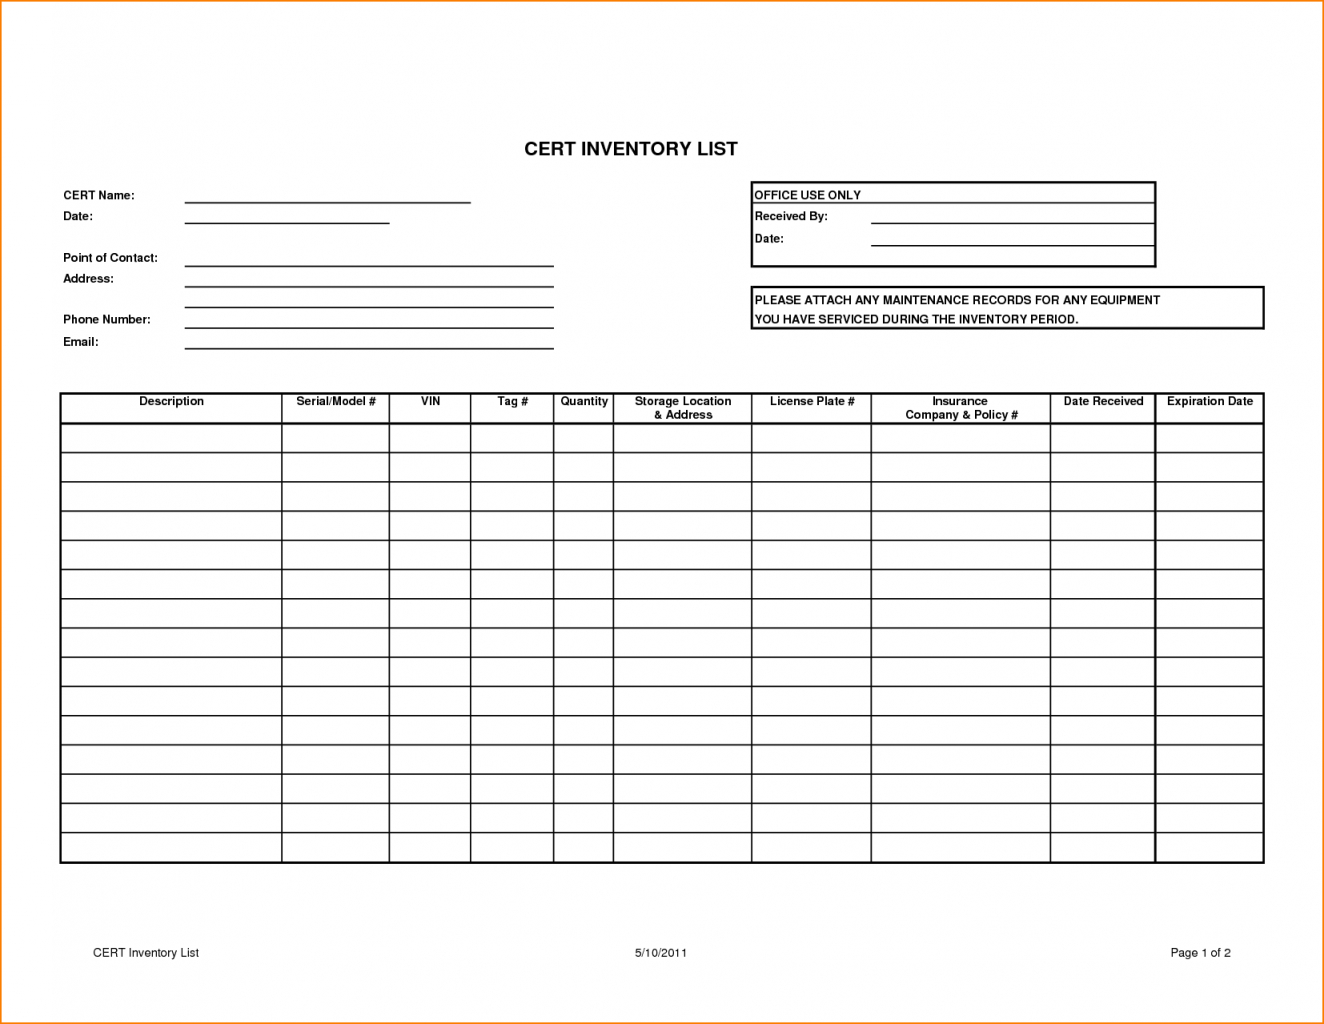 Stock Excel Spreadsheet Free Download Intended For Stock Management Software In Excel Free Download Inventory Tracking